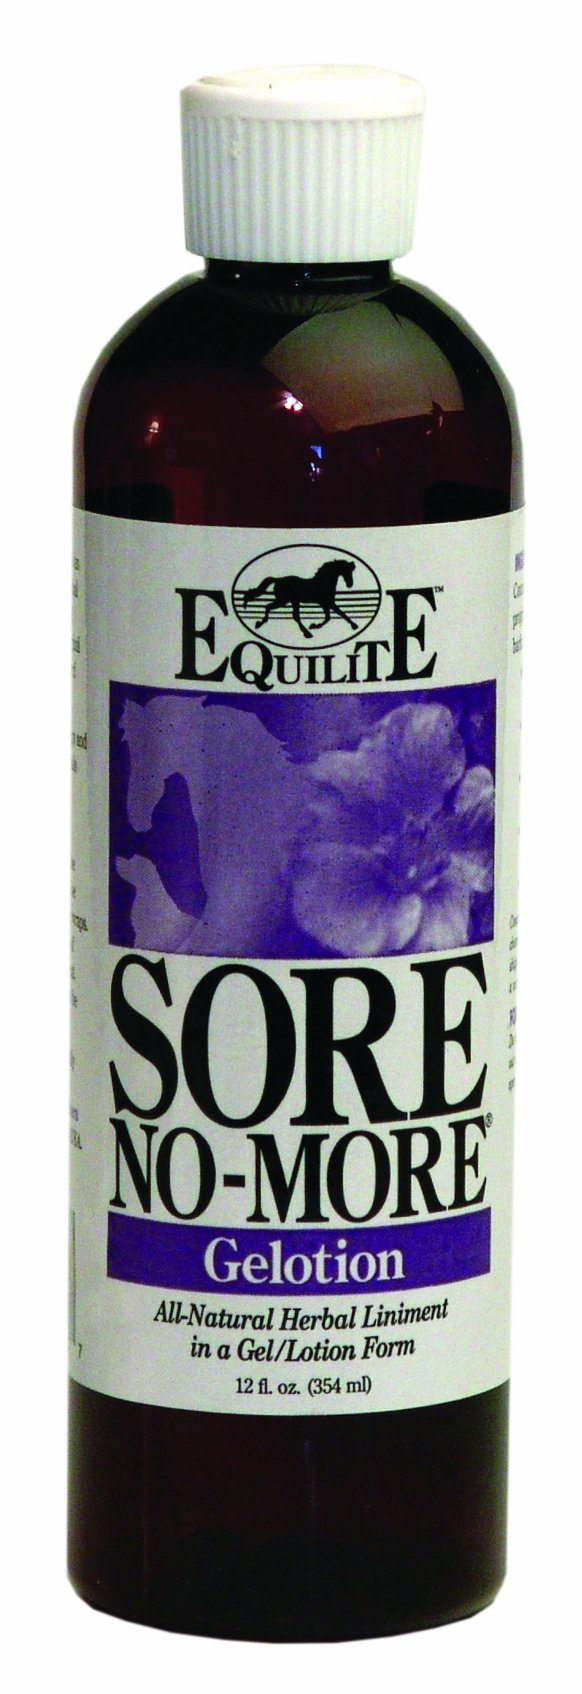 Sore No More Gelotion Bottle (12-Ounce) by Arenus